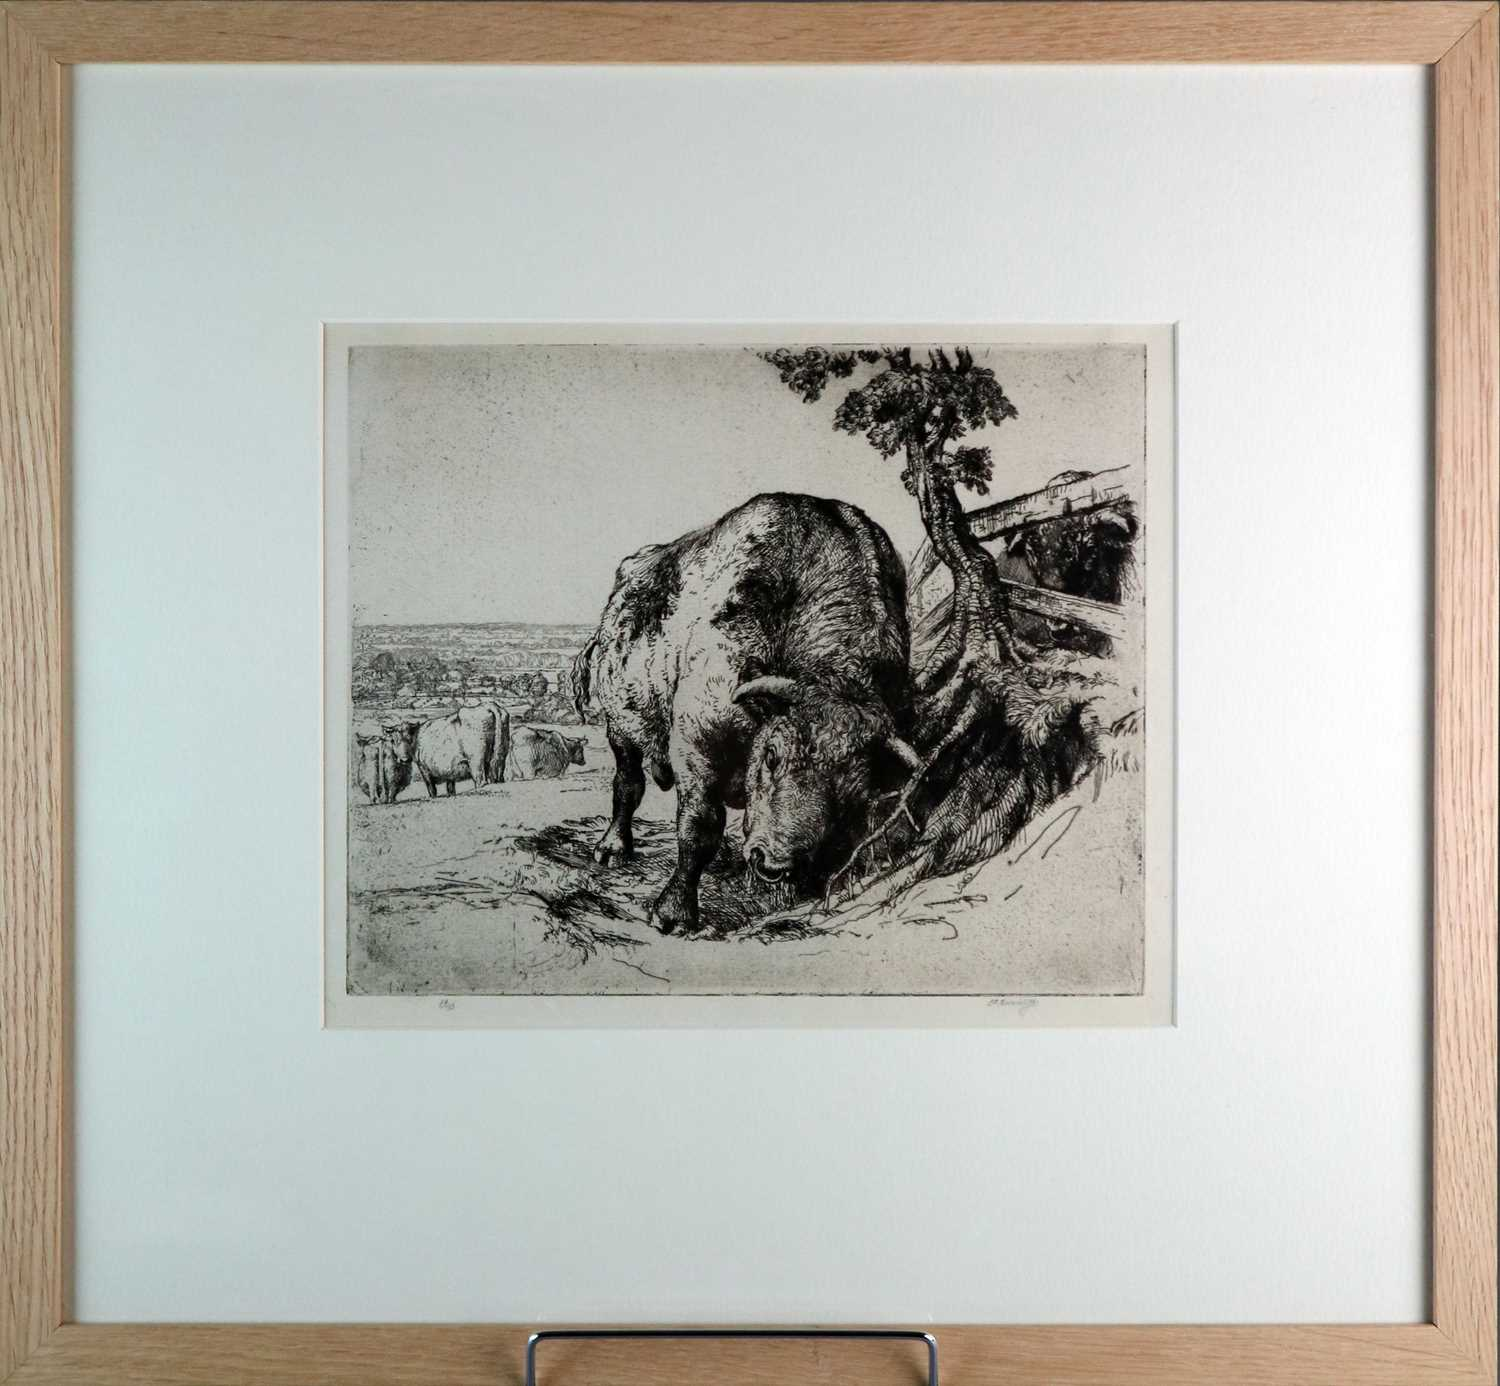 Charles Frederick Tunnicliffe OBE RA (1901-1979) The Bull - Image 2 of 4